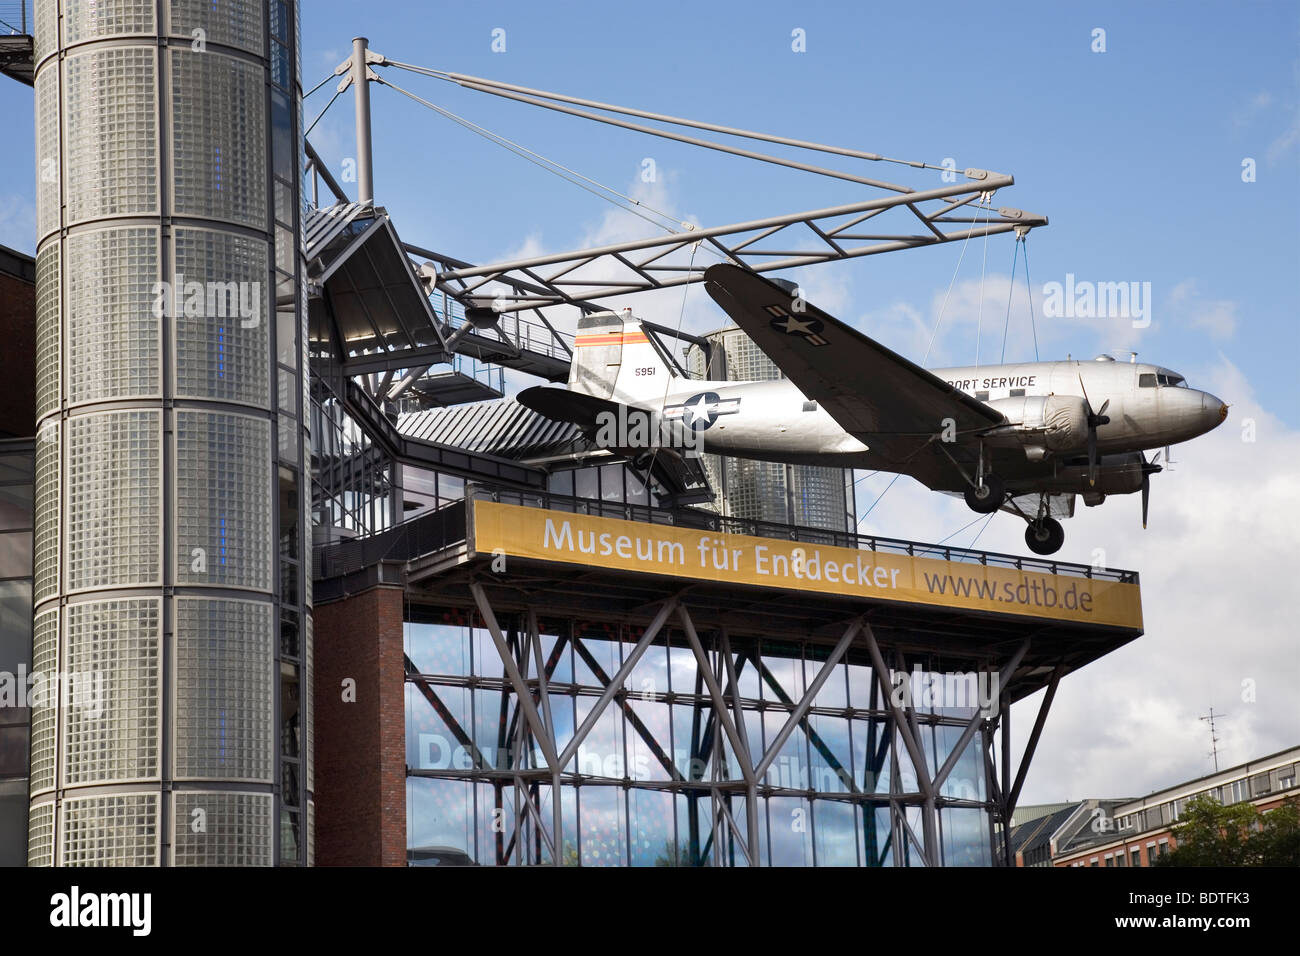 MuseumofTechnology with C-47 Skytrain candy bomber, Berlin, Germany Stock Photo